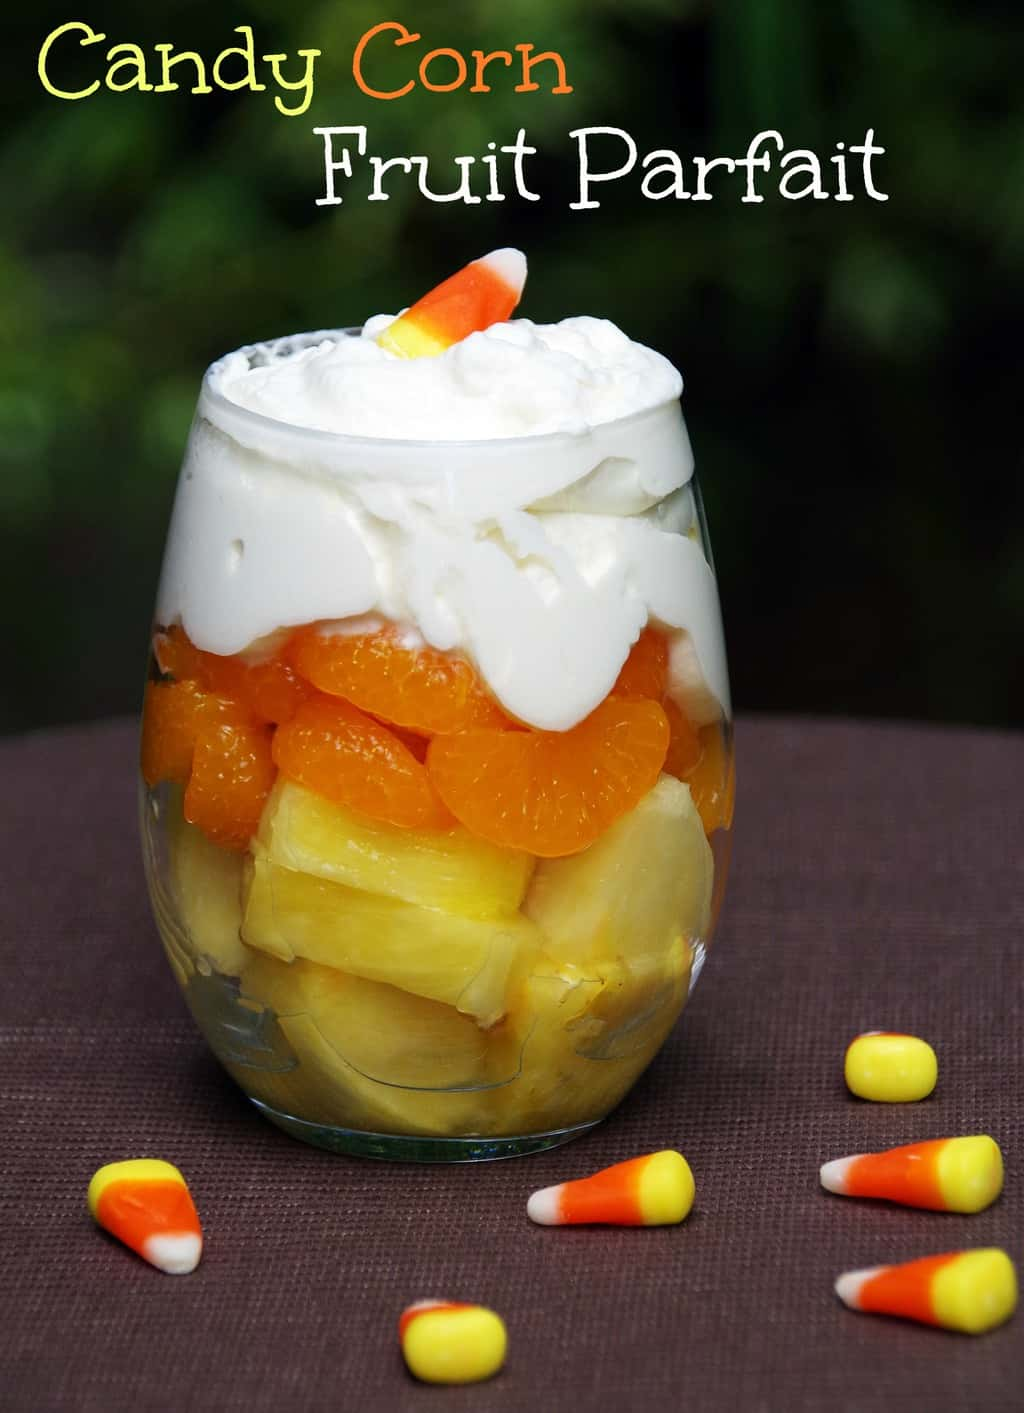 Candy Corn Fruit Parfait Makes A Healthy Halloween Dessert